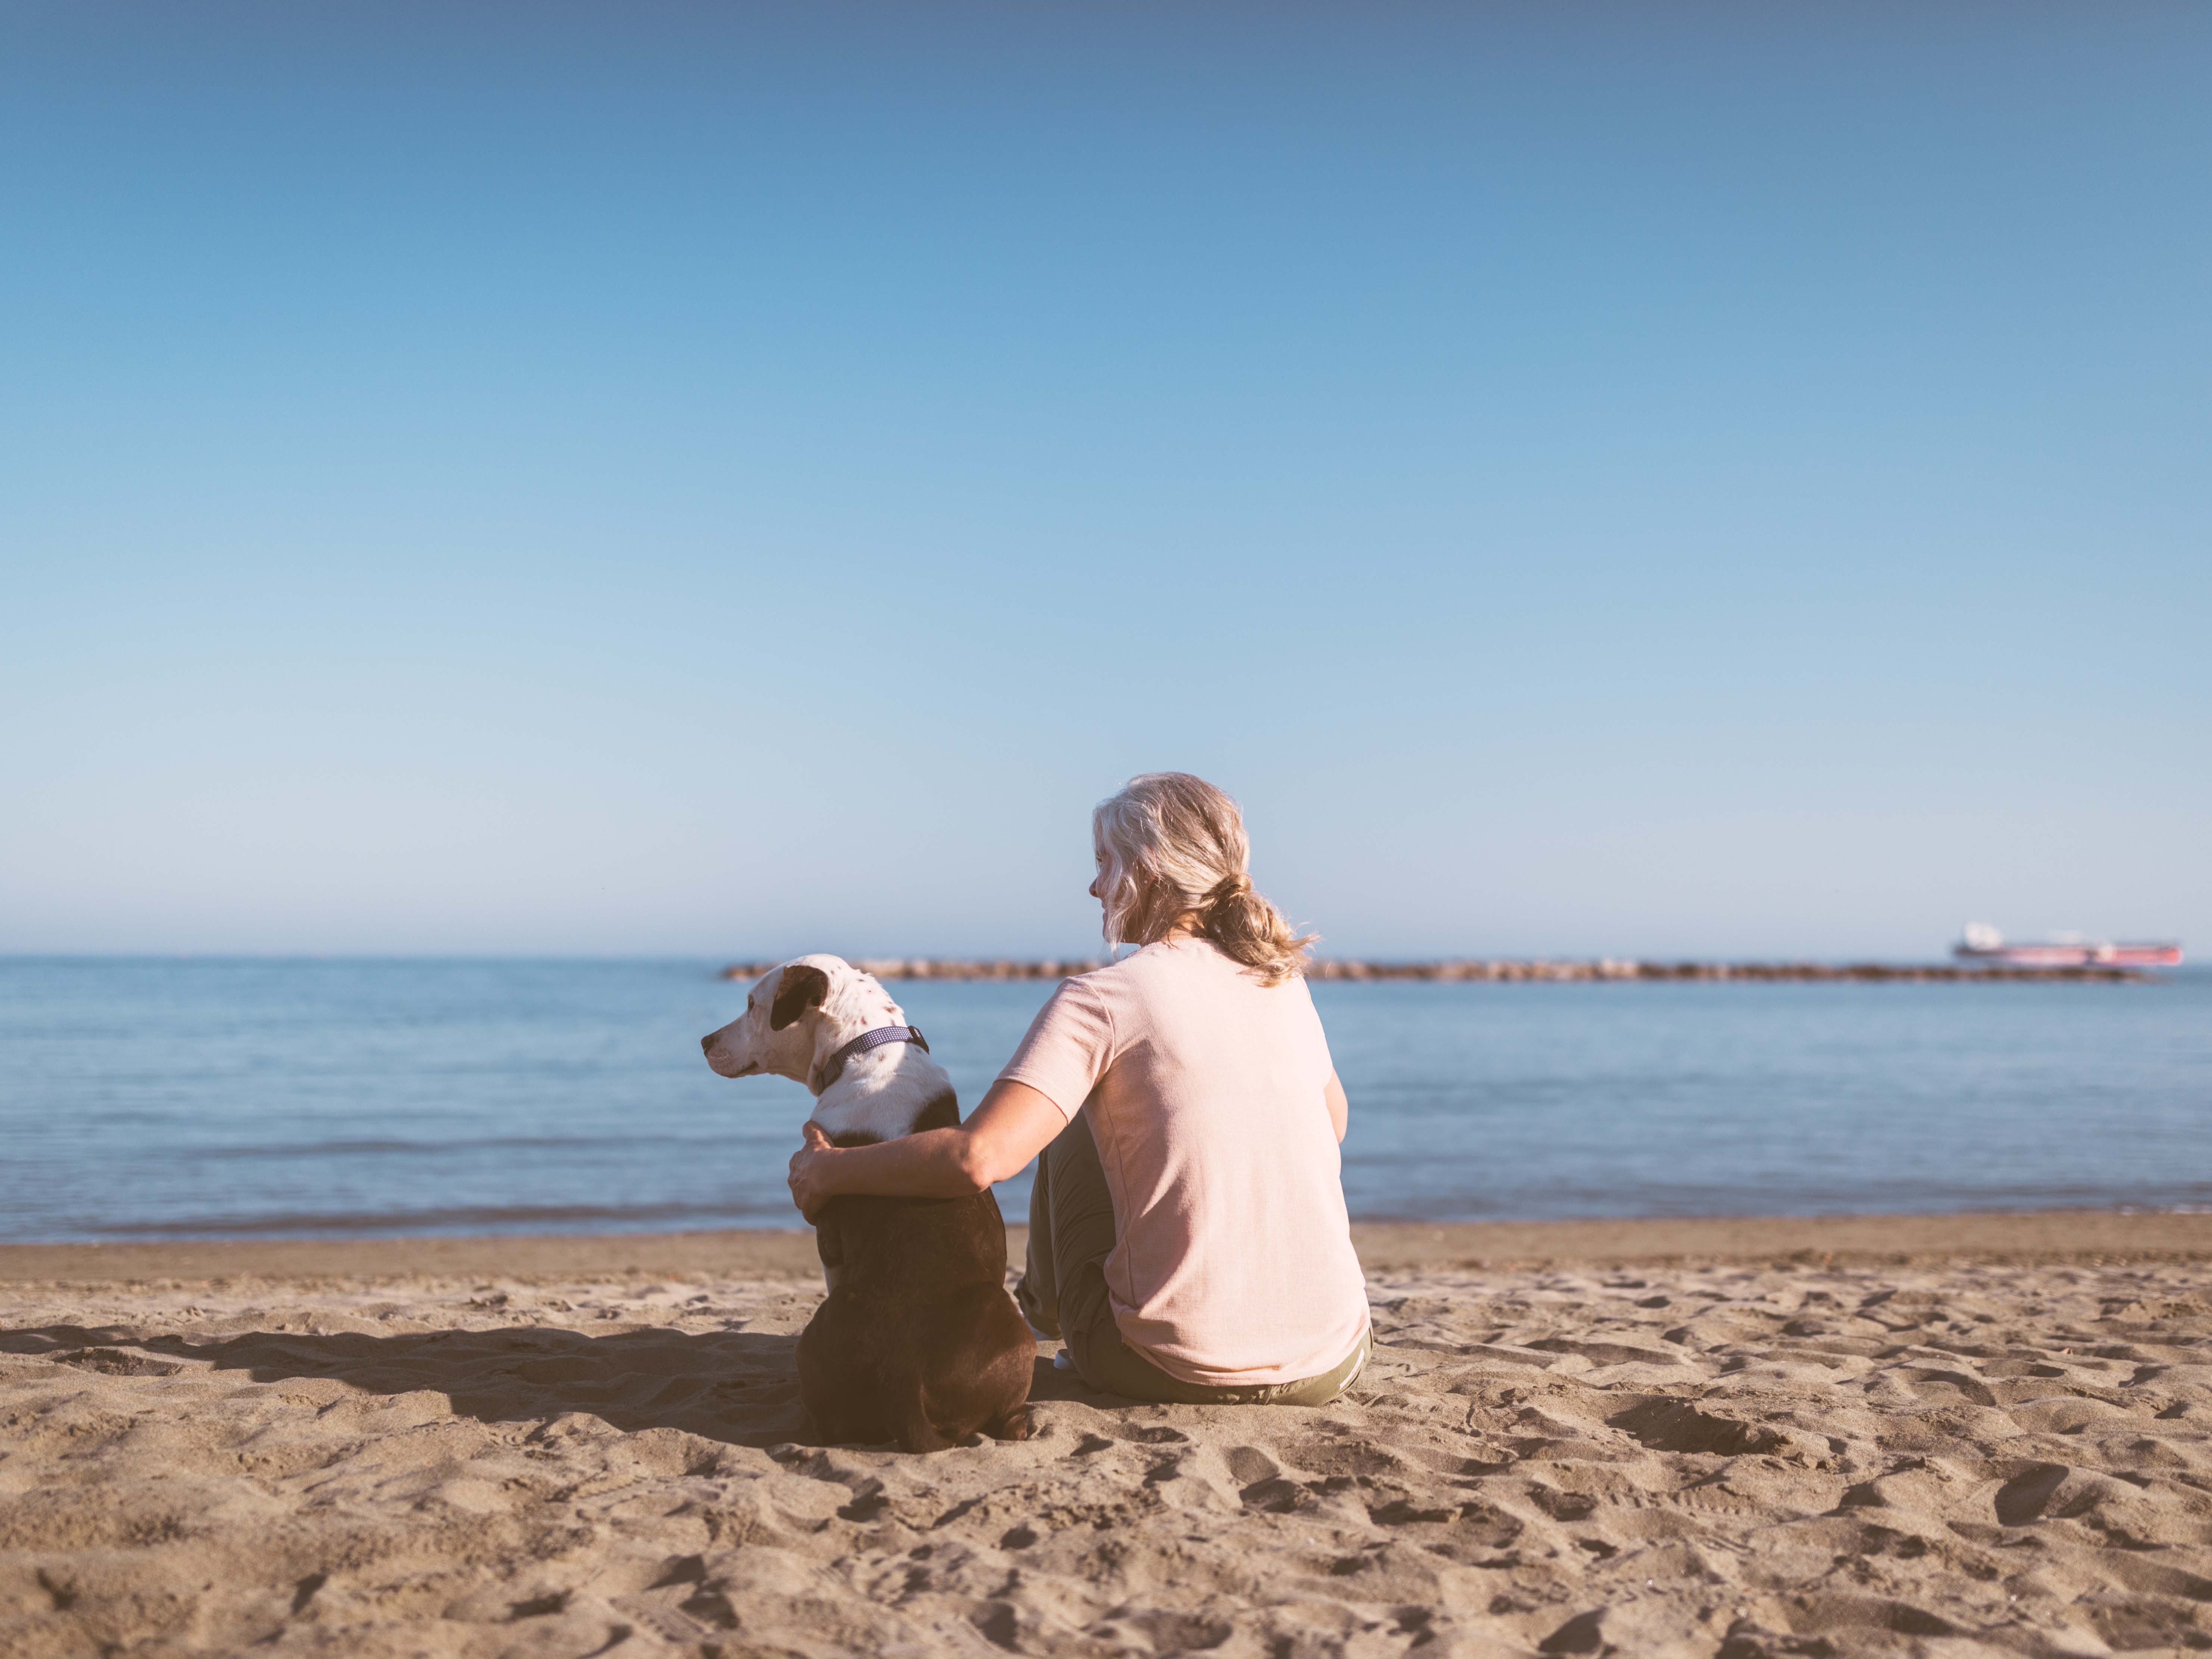 Image of woman with dog on beach